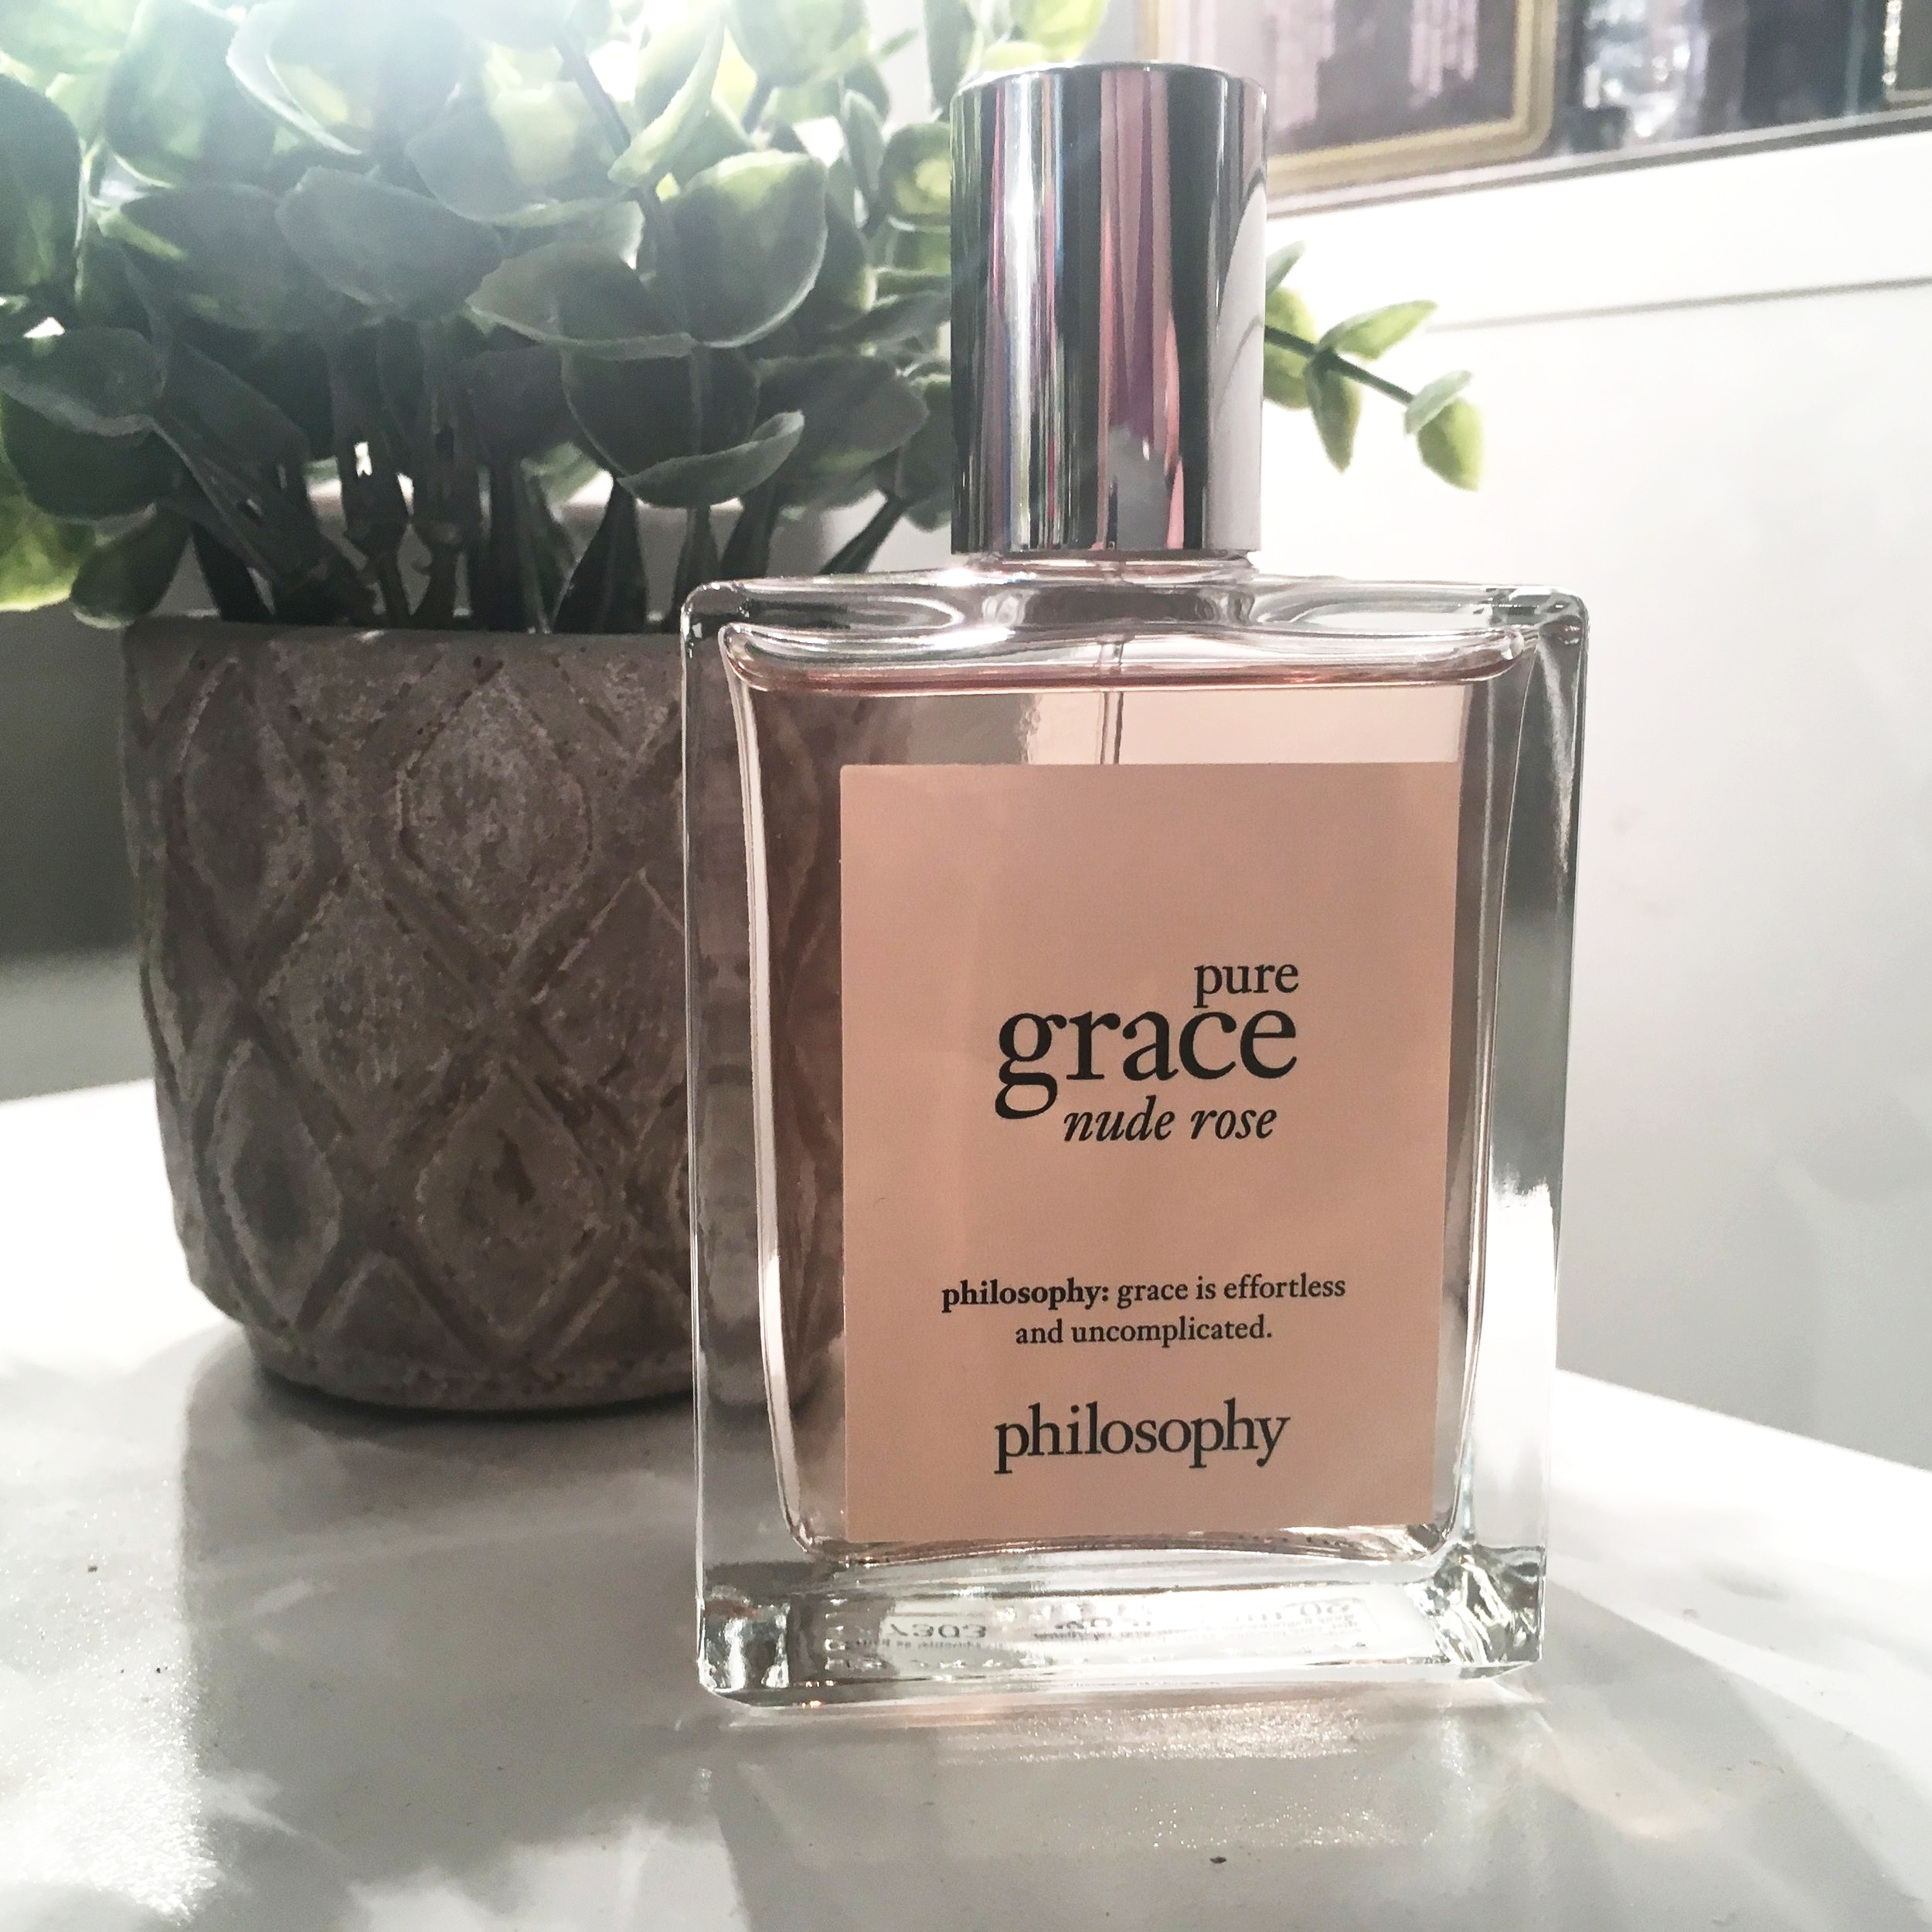 philosophy pure grace nude rose February favorites a cheerful life blog